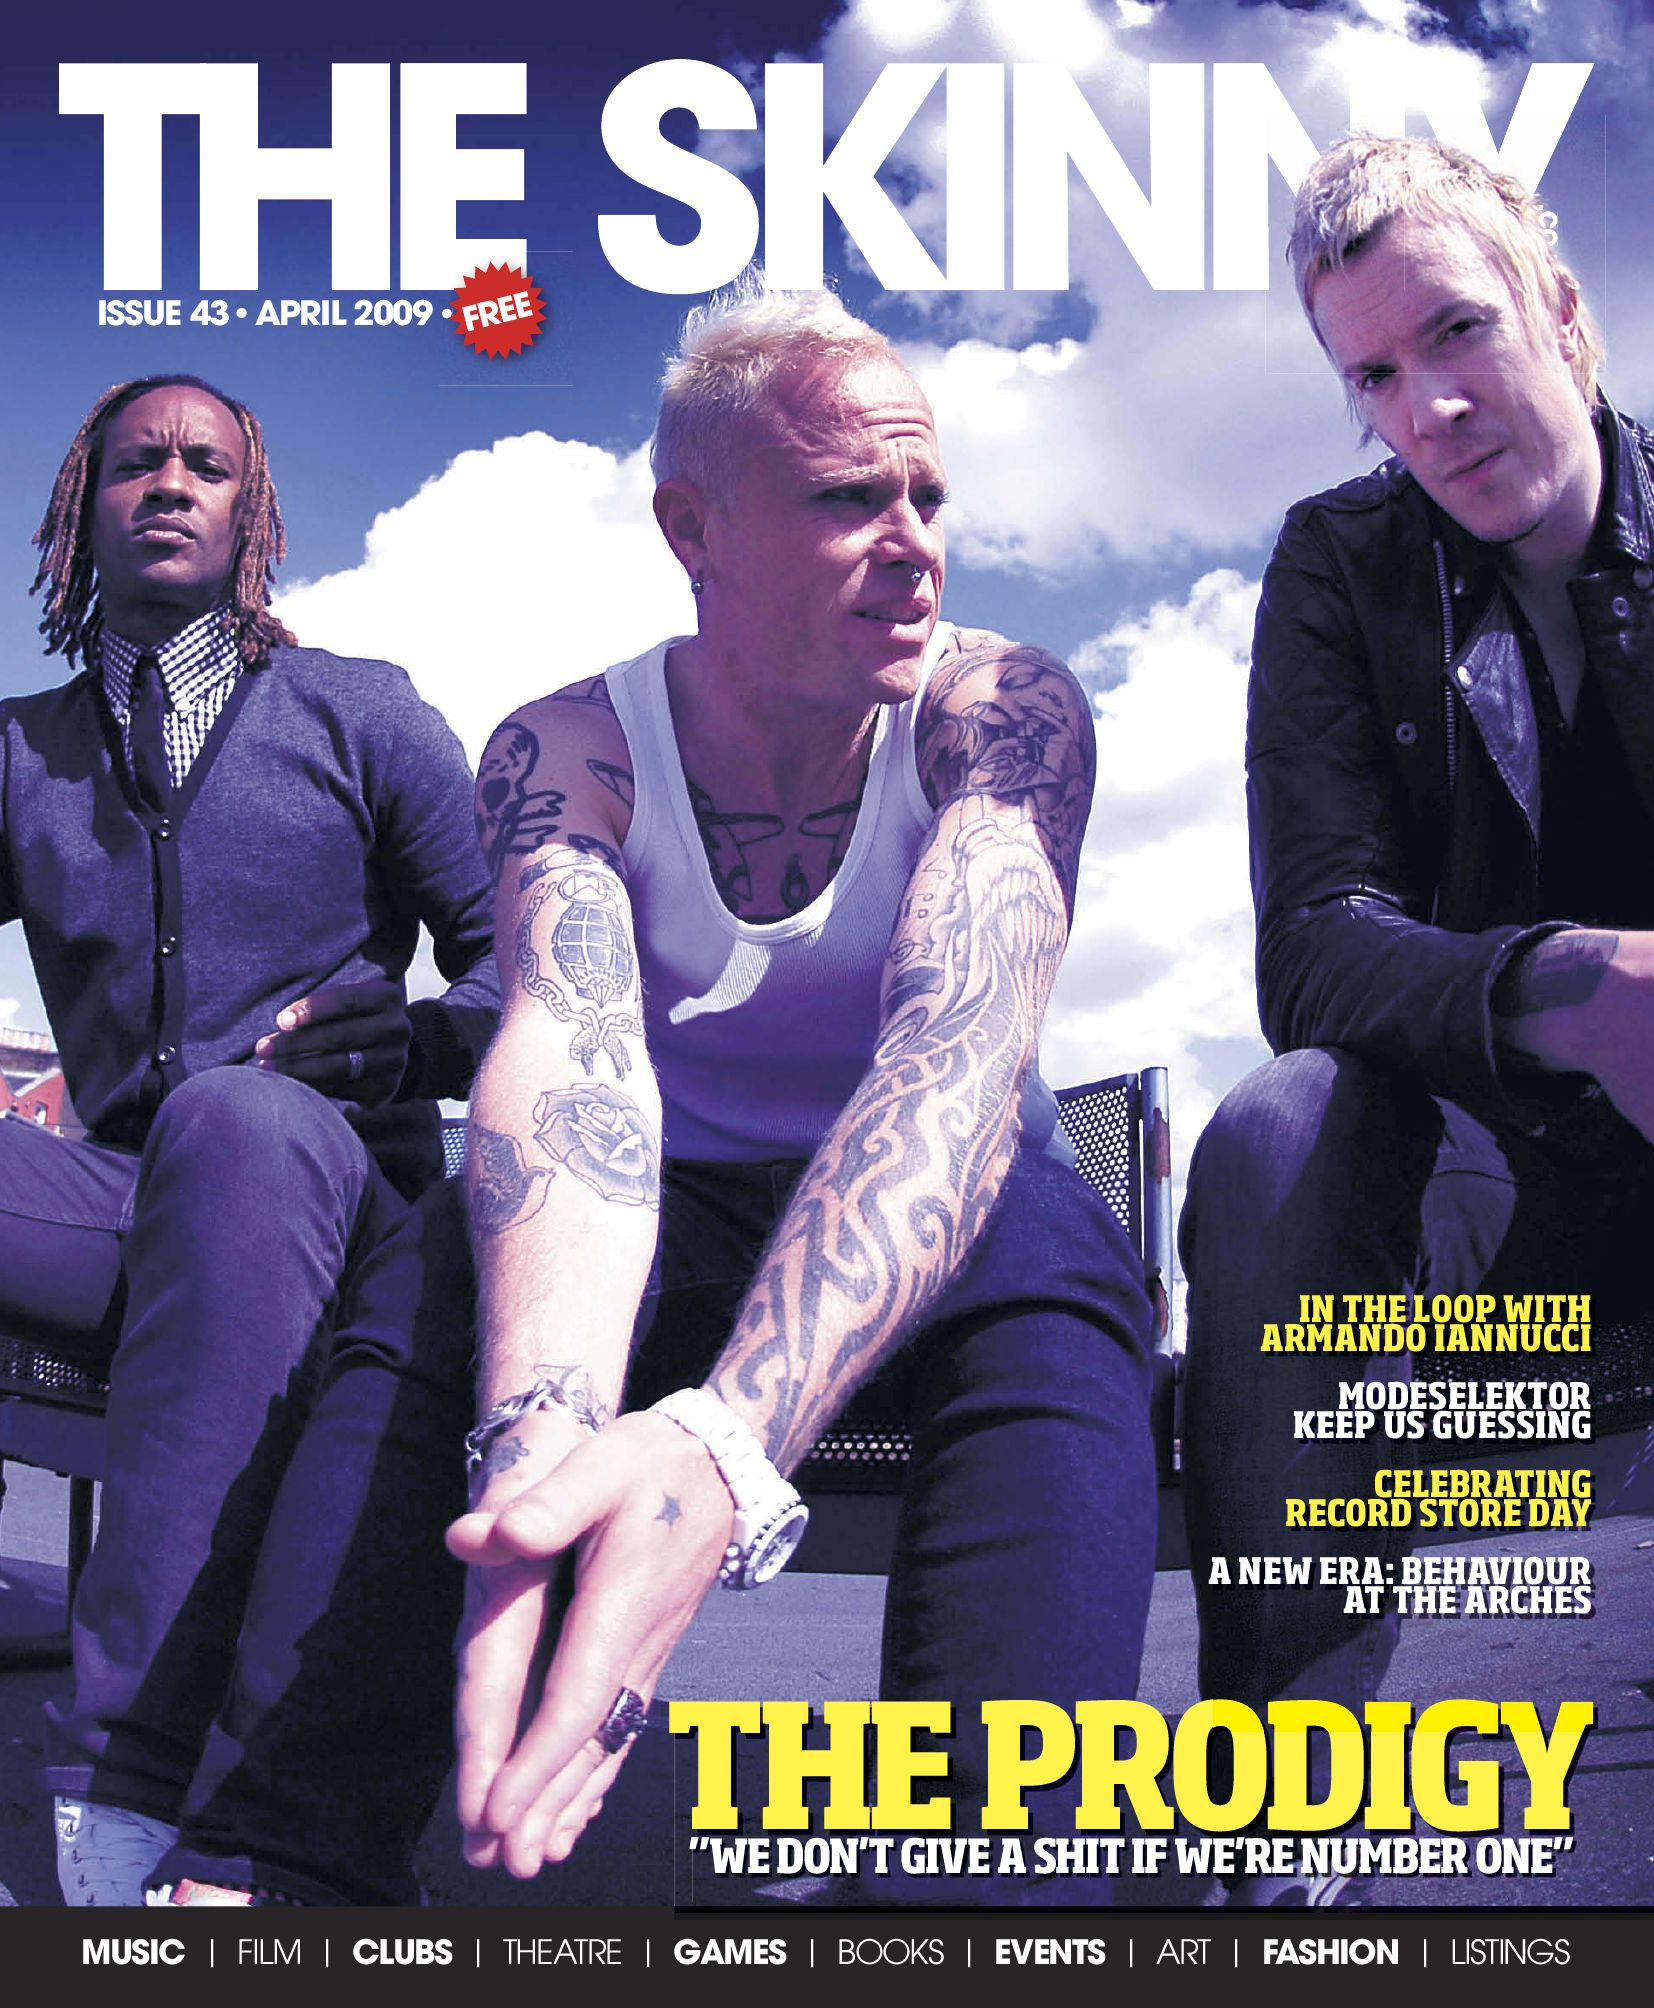 c2108e4f The Skinny April 2009 by The Skinny - issuu